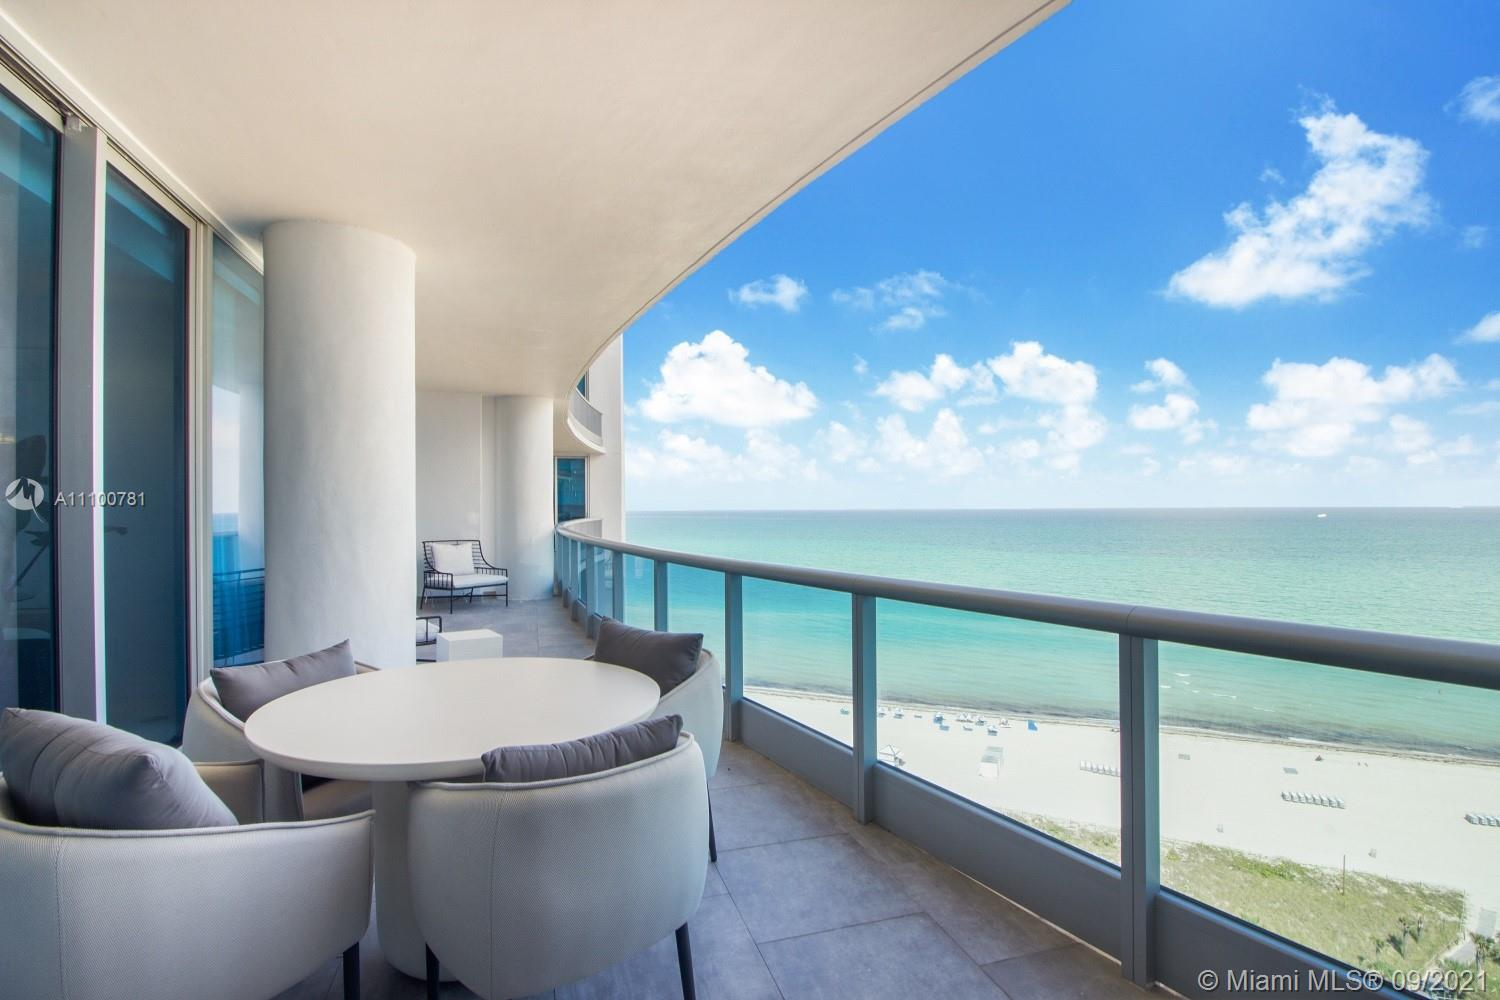 THE RESIDENCES AT THE BAT Condo,For Sale,THE RESIDENCES AT THE BAT Brickell,realty,broker,condos near me